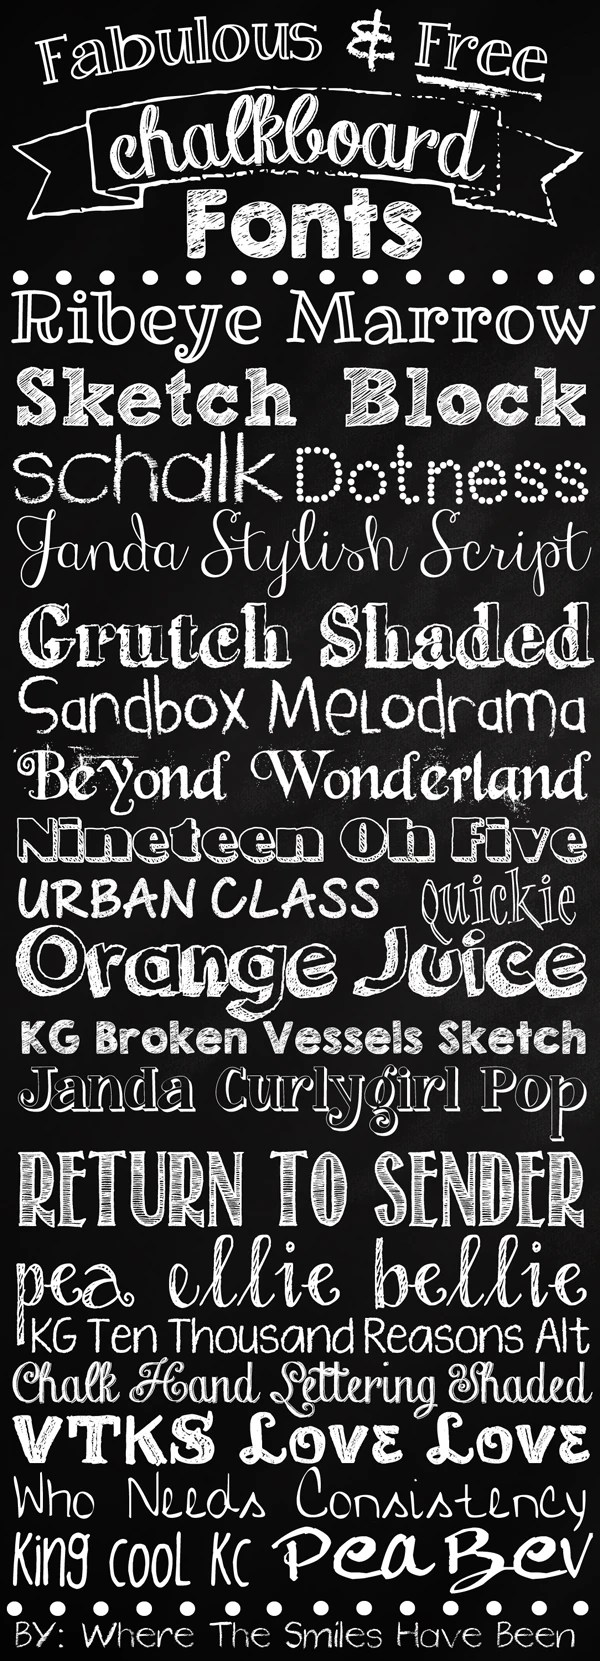 photograph relating to Printable Fonts for Signs identify Amazing Absolutely free Chalkboard Fonts